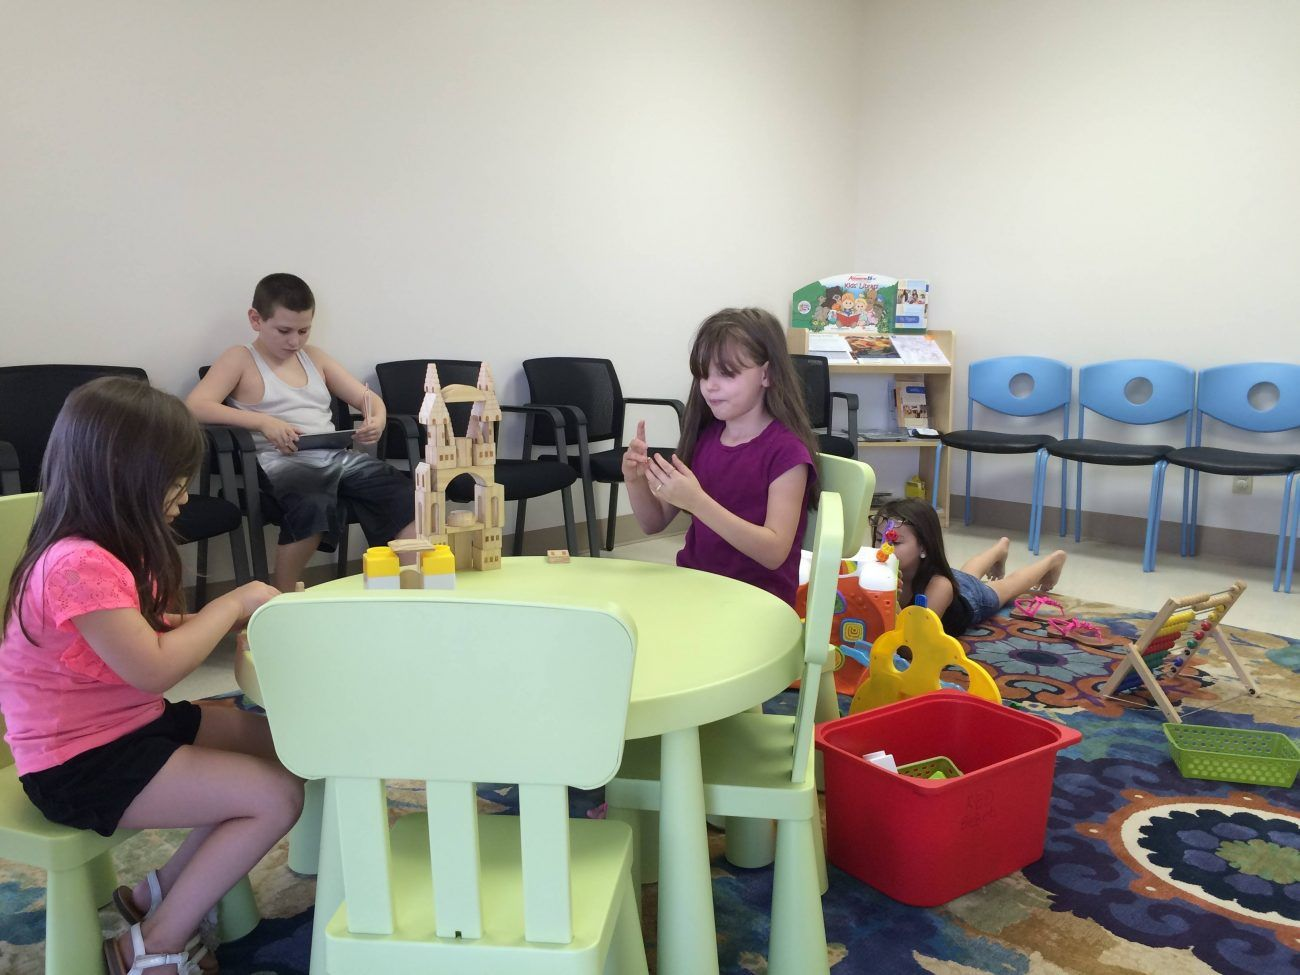 After Hours Pediatric Urgent Care Near Me